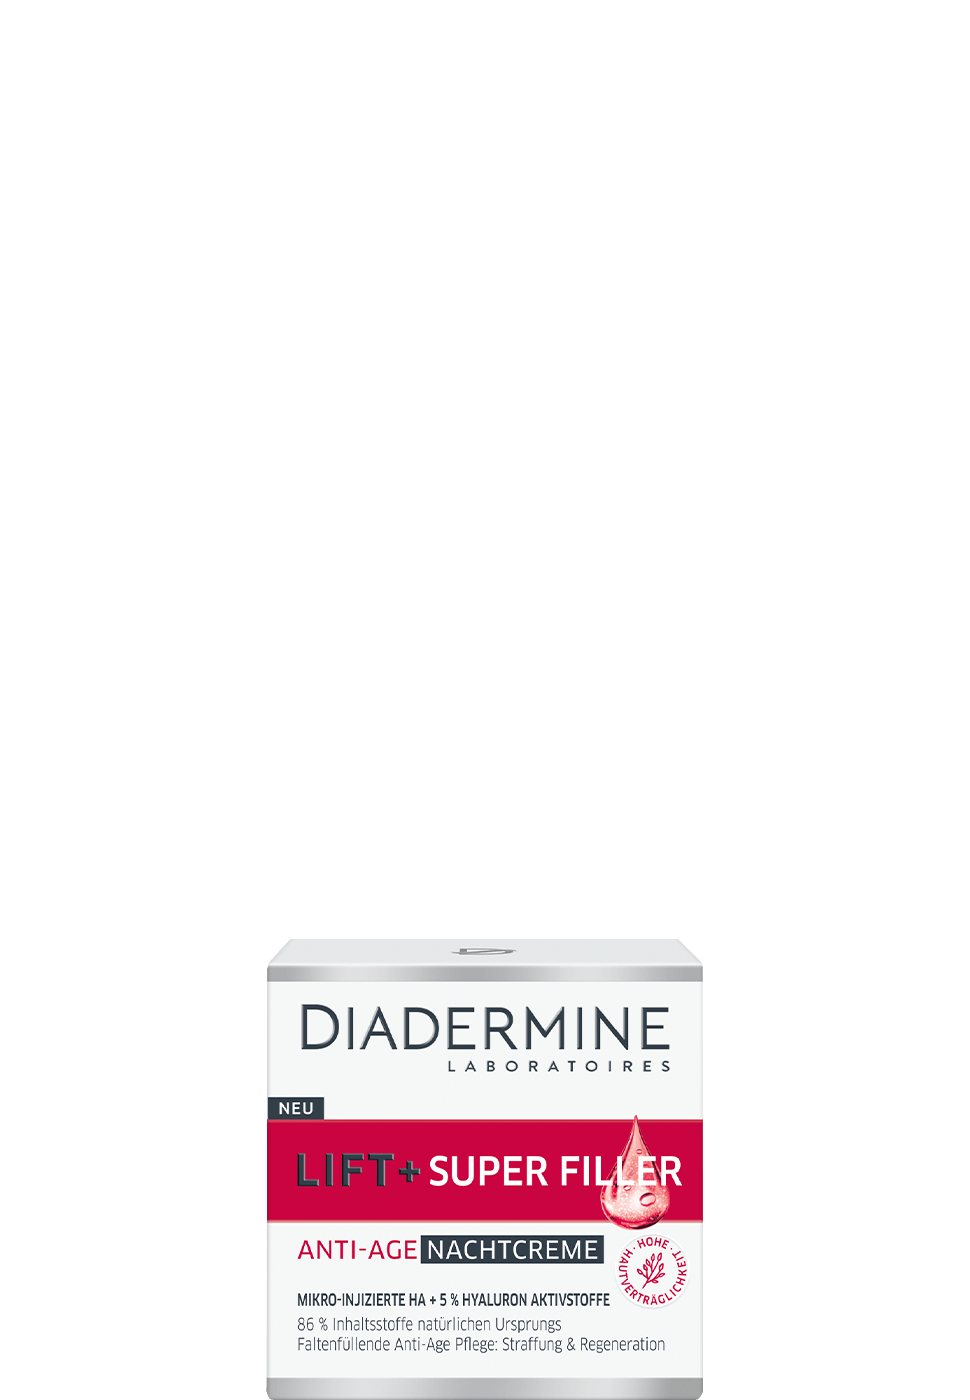 diadermine_de_lift_plus_super_filler_nachtcreme_970x1400